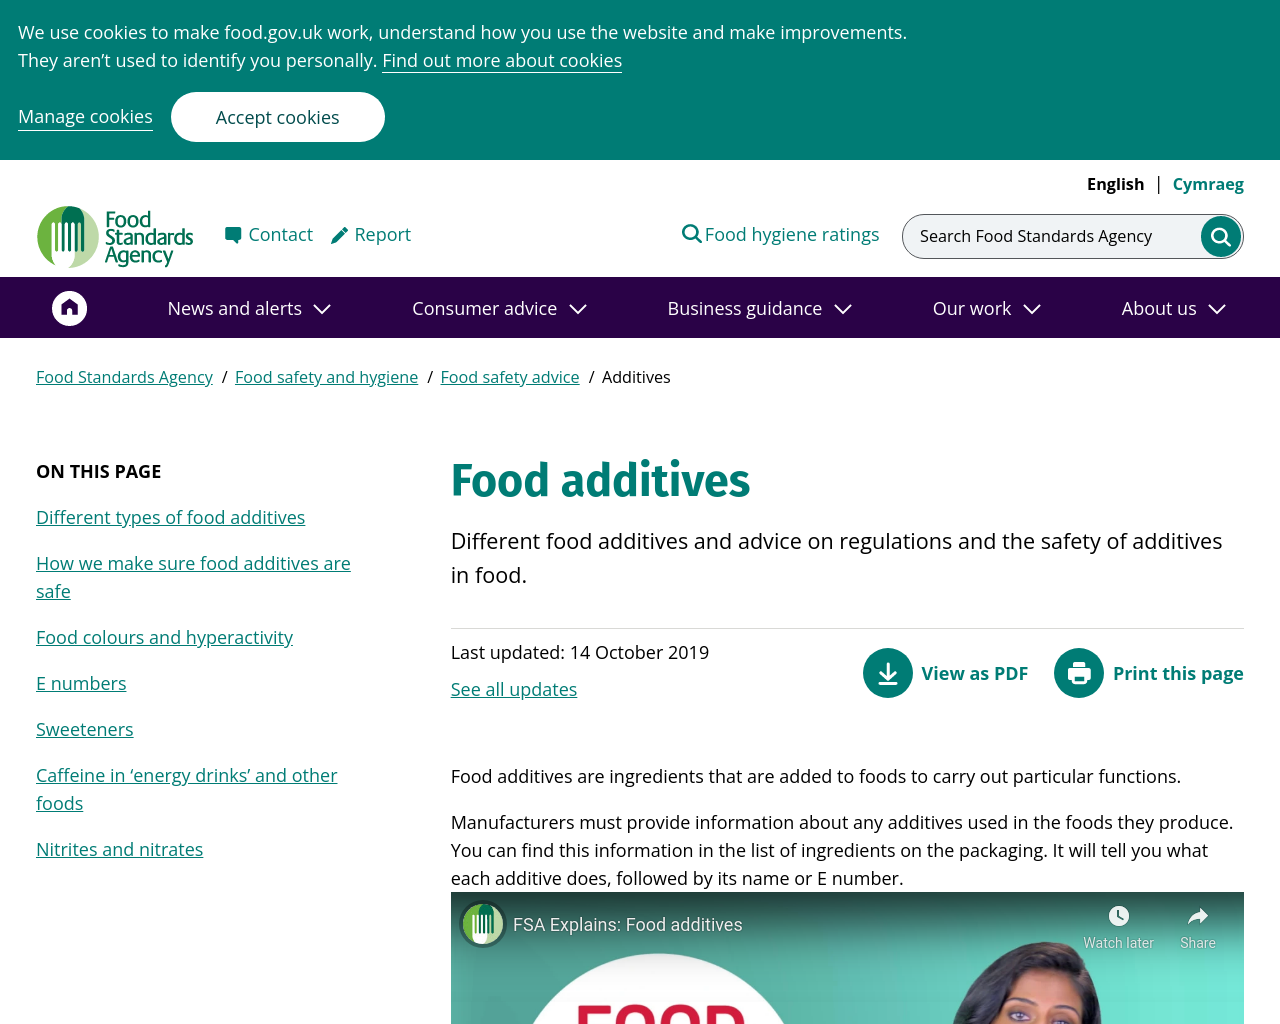 GCSE Food Additives video and information from the food standards agency